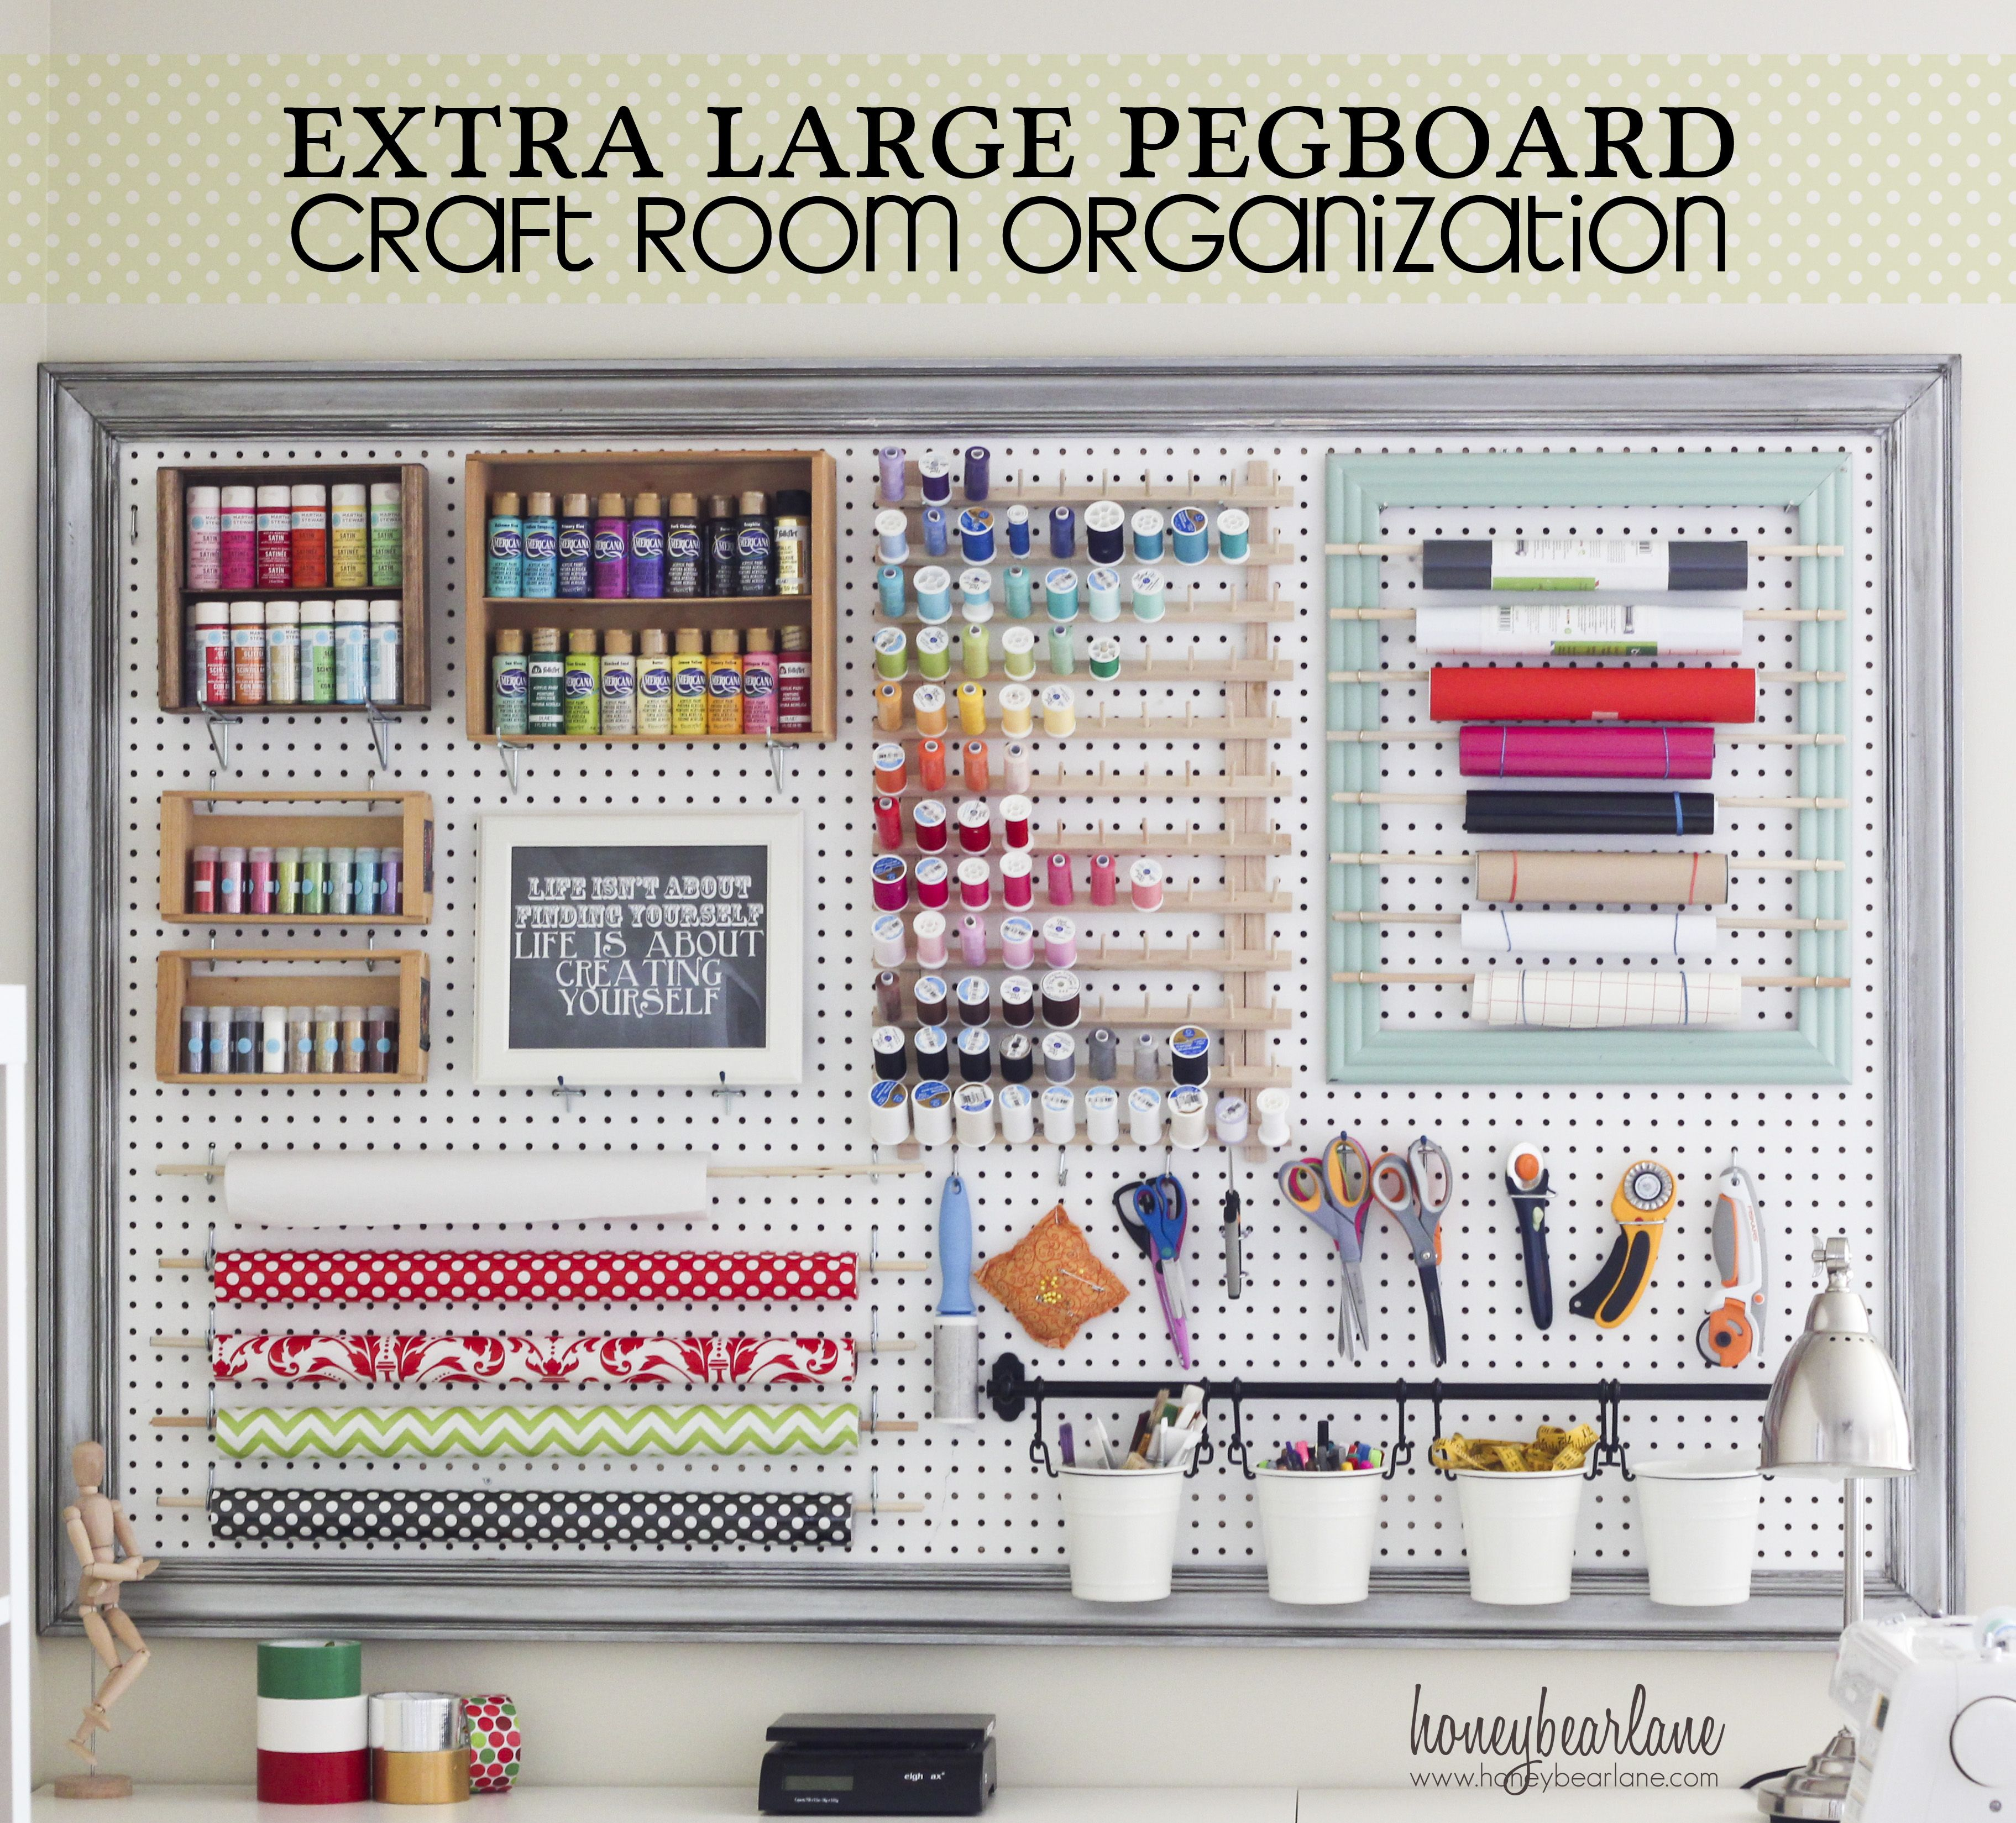 About us pegboard craft room organizations and craft room storage - Craft room ideas for small spaces concept ...